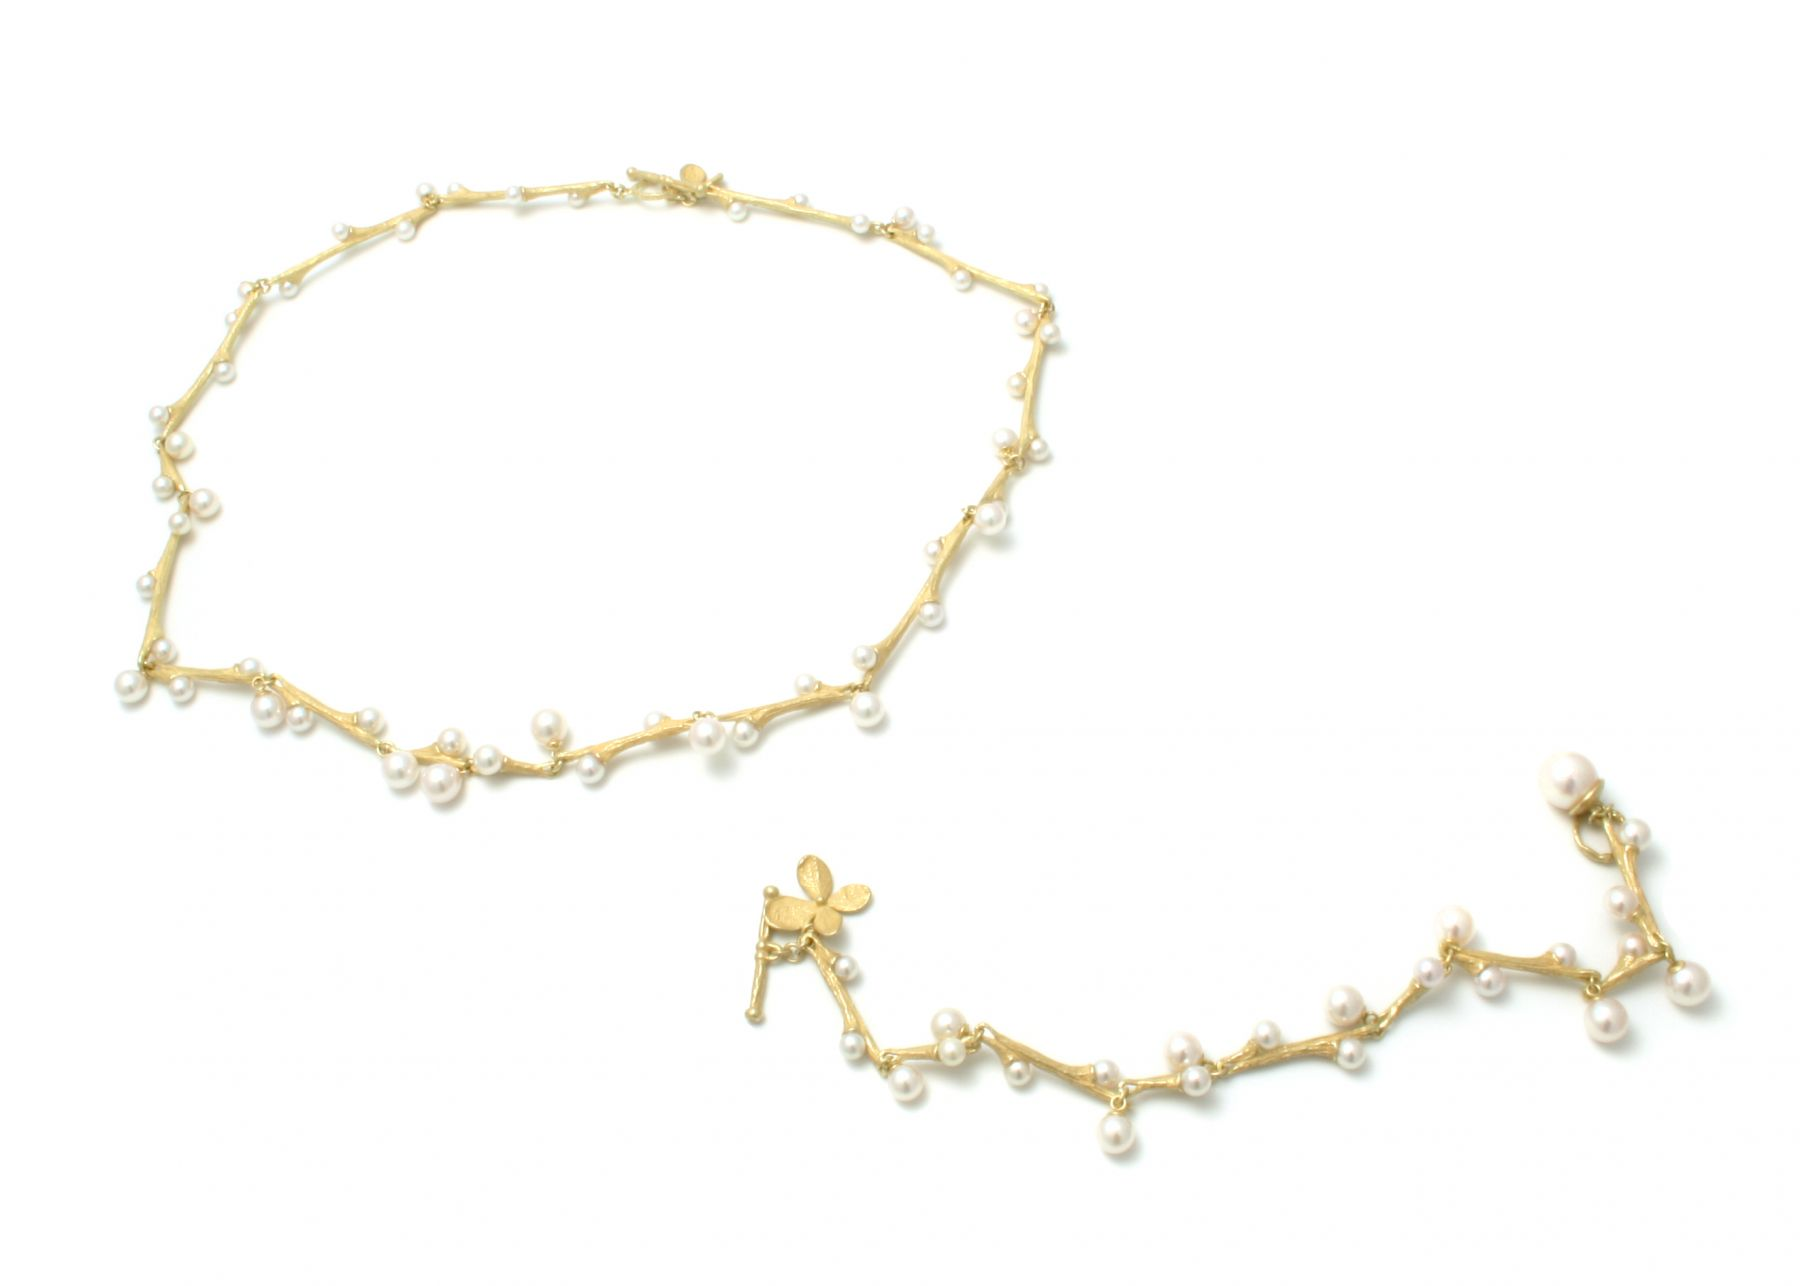 John Iversen willow, gold necklace, pearls, bracelet